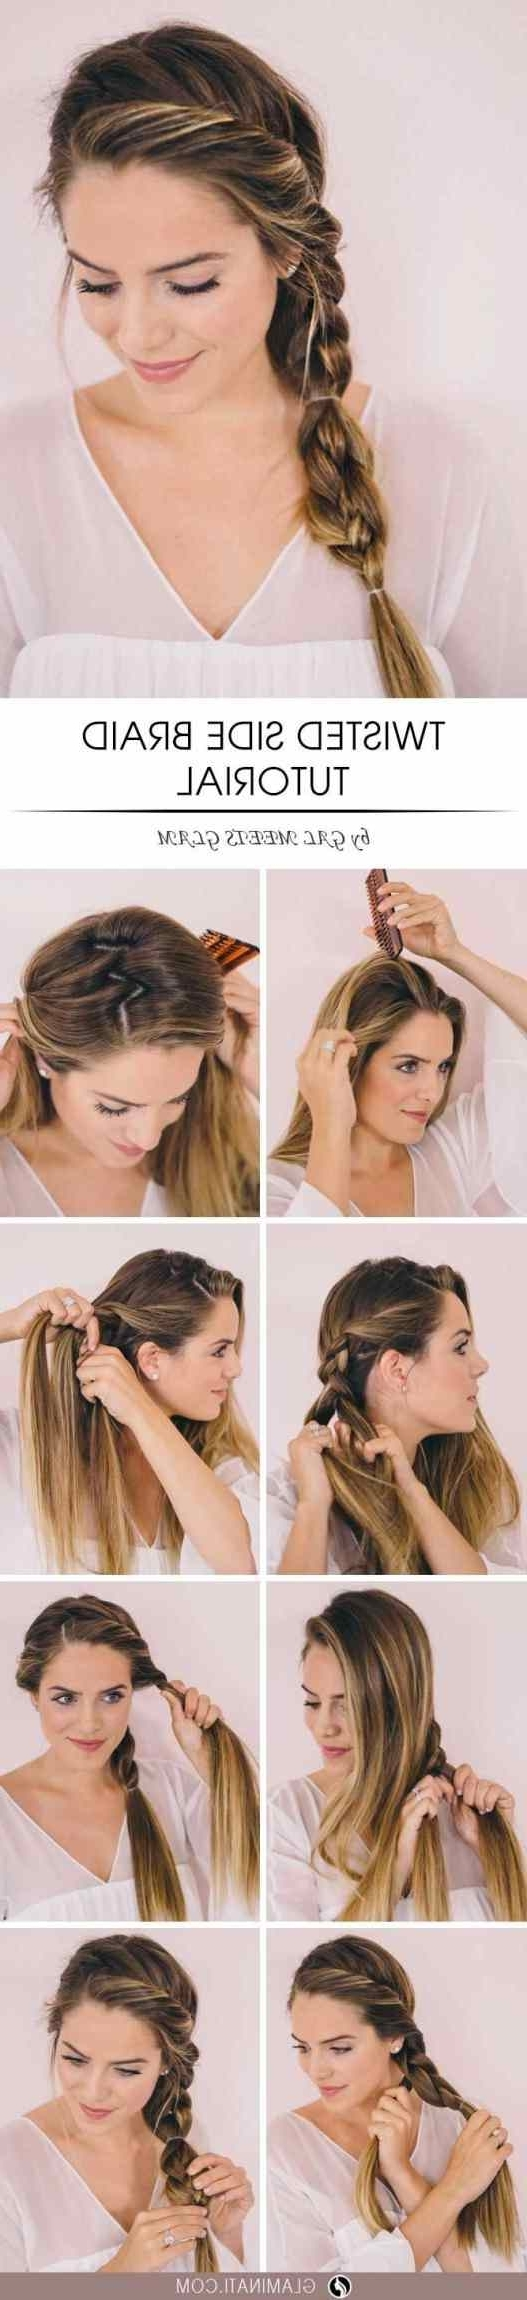 Messy Bun With Lazy Minute Easy Hairstyles Stepstep Braids Regarding Trendy Korean Braided Hairstyles (View 11 of 15)